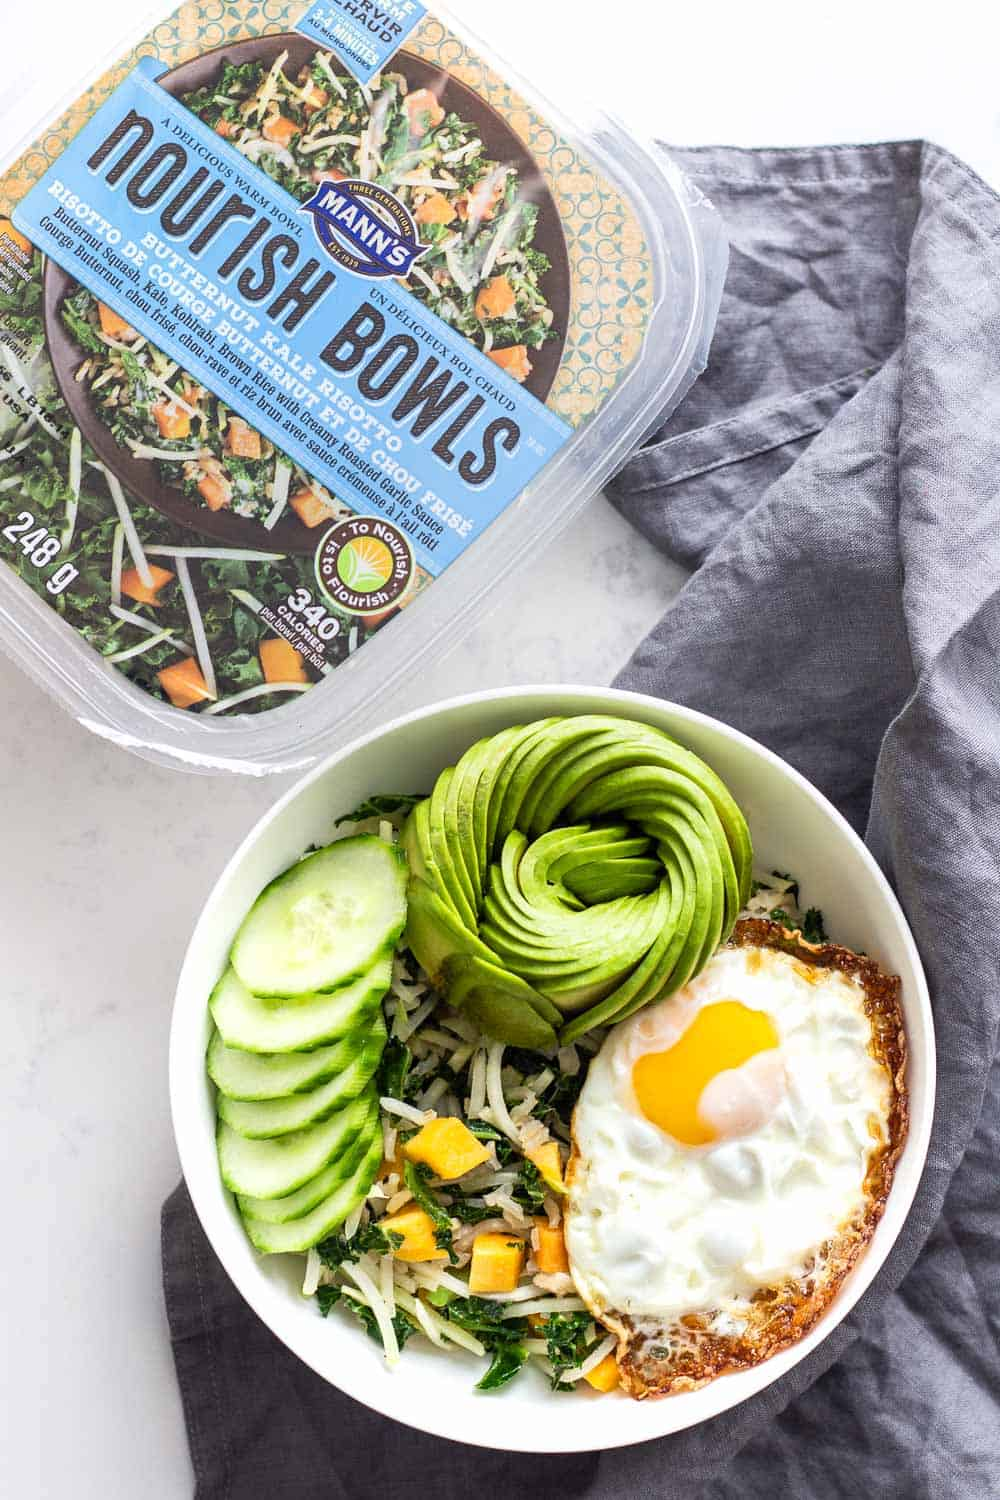 Breakfast Buddha Bowl and Mann's Nourish Bowl